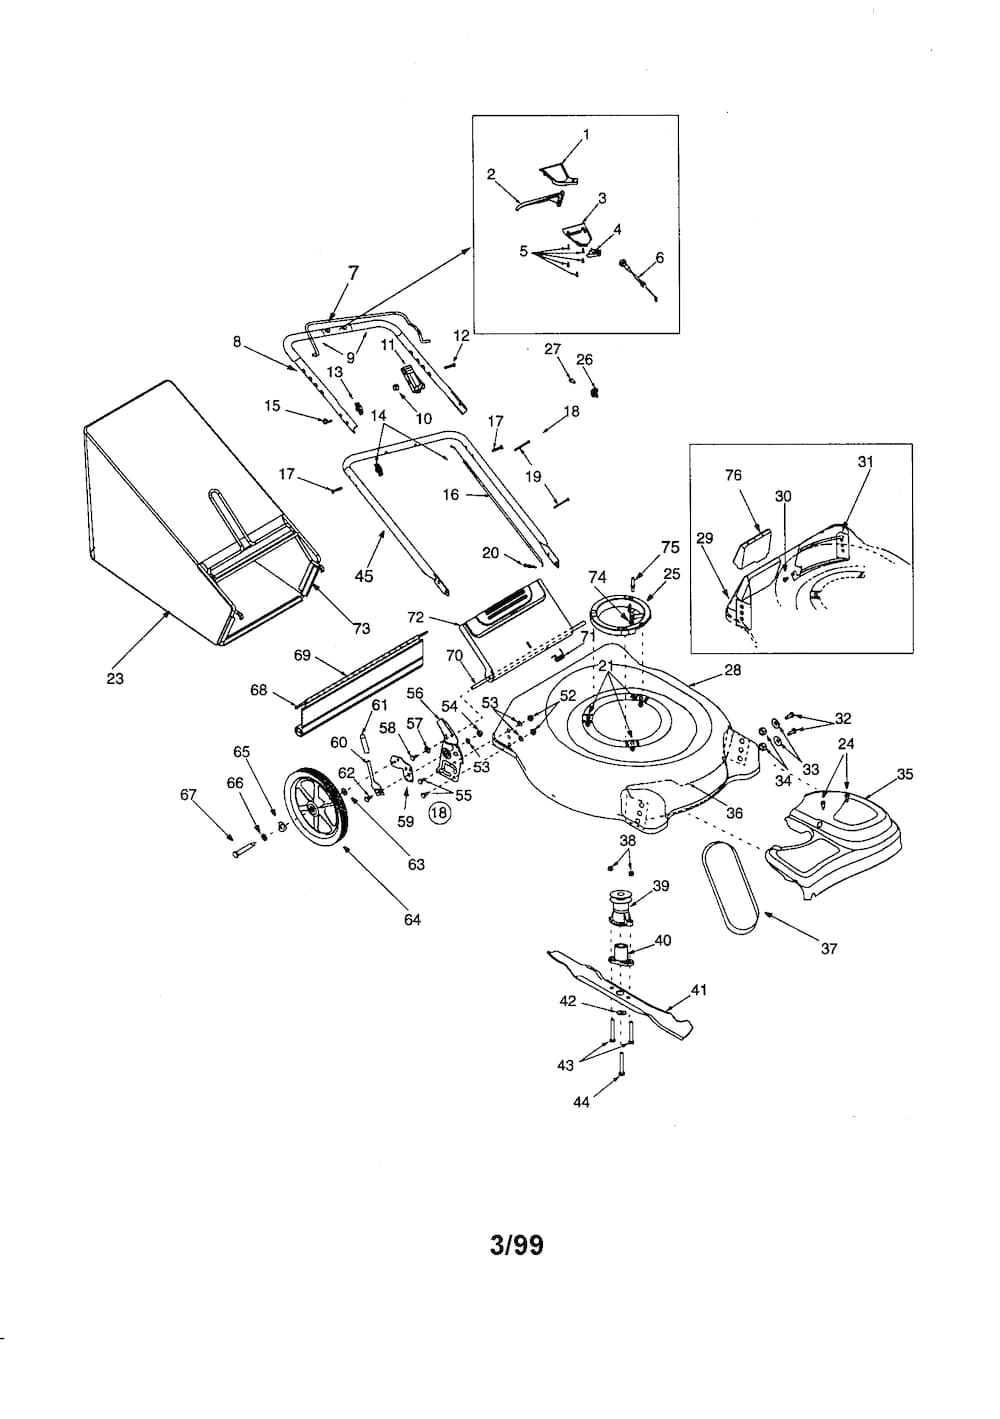 [DIAGRAM] Troy Bilt Engine Diagram FULL Version HD Quality